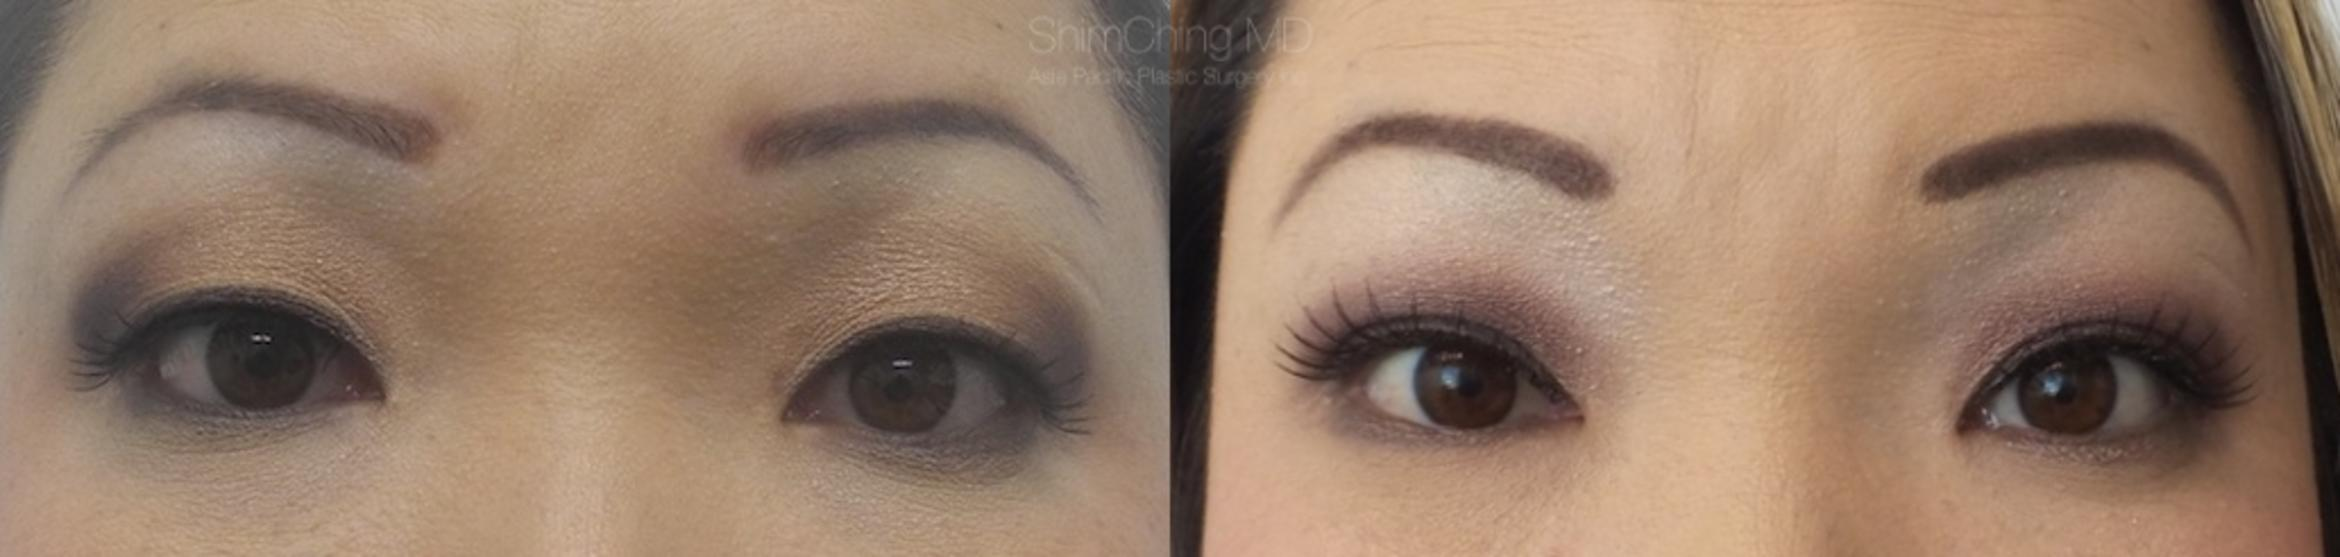 Asian Eyelid Case 4 Before & After View #1 | Honolulu, HI | Shim Ching, MD: Asia Pacific Plastic Surgery